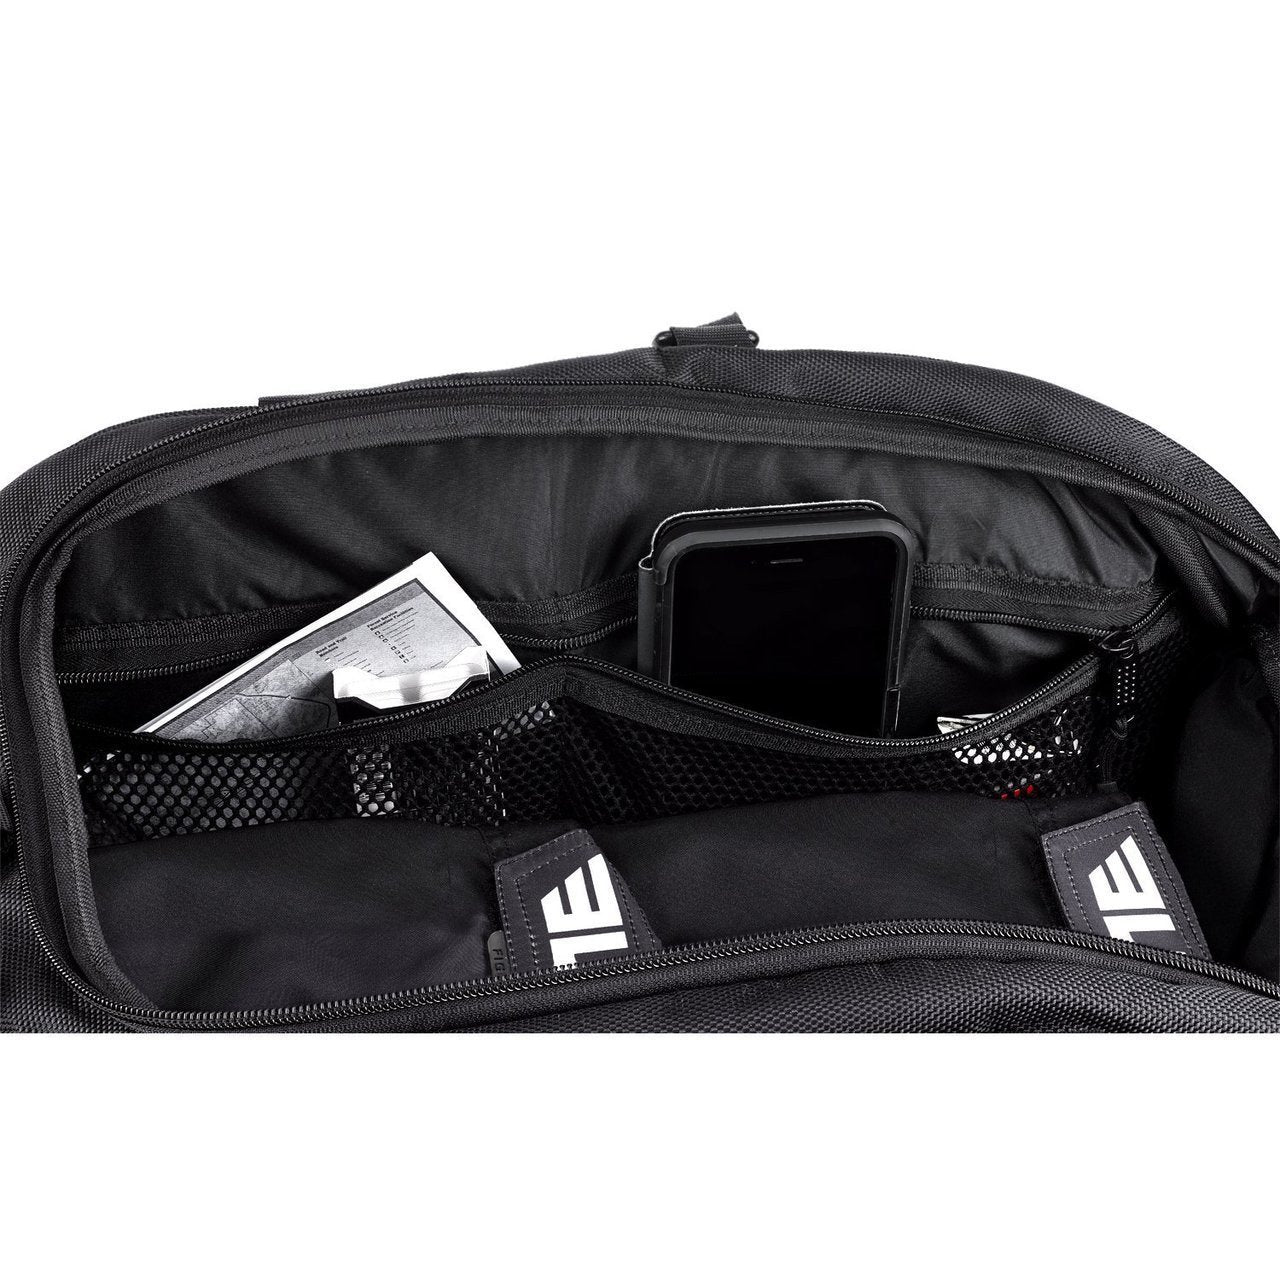 Load image into Gallery viewer, Elite Sports Warrior Series Black Medium Duffel Wrestling Gear Gym Bag & Backpack